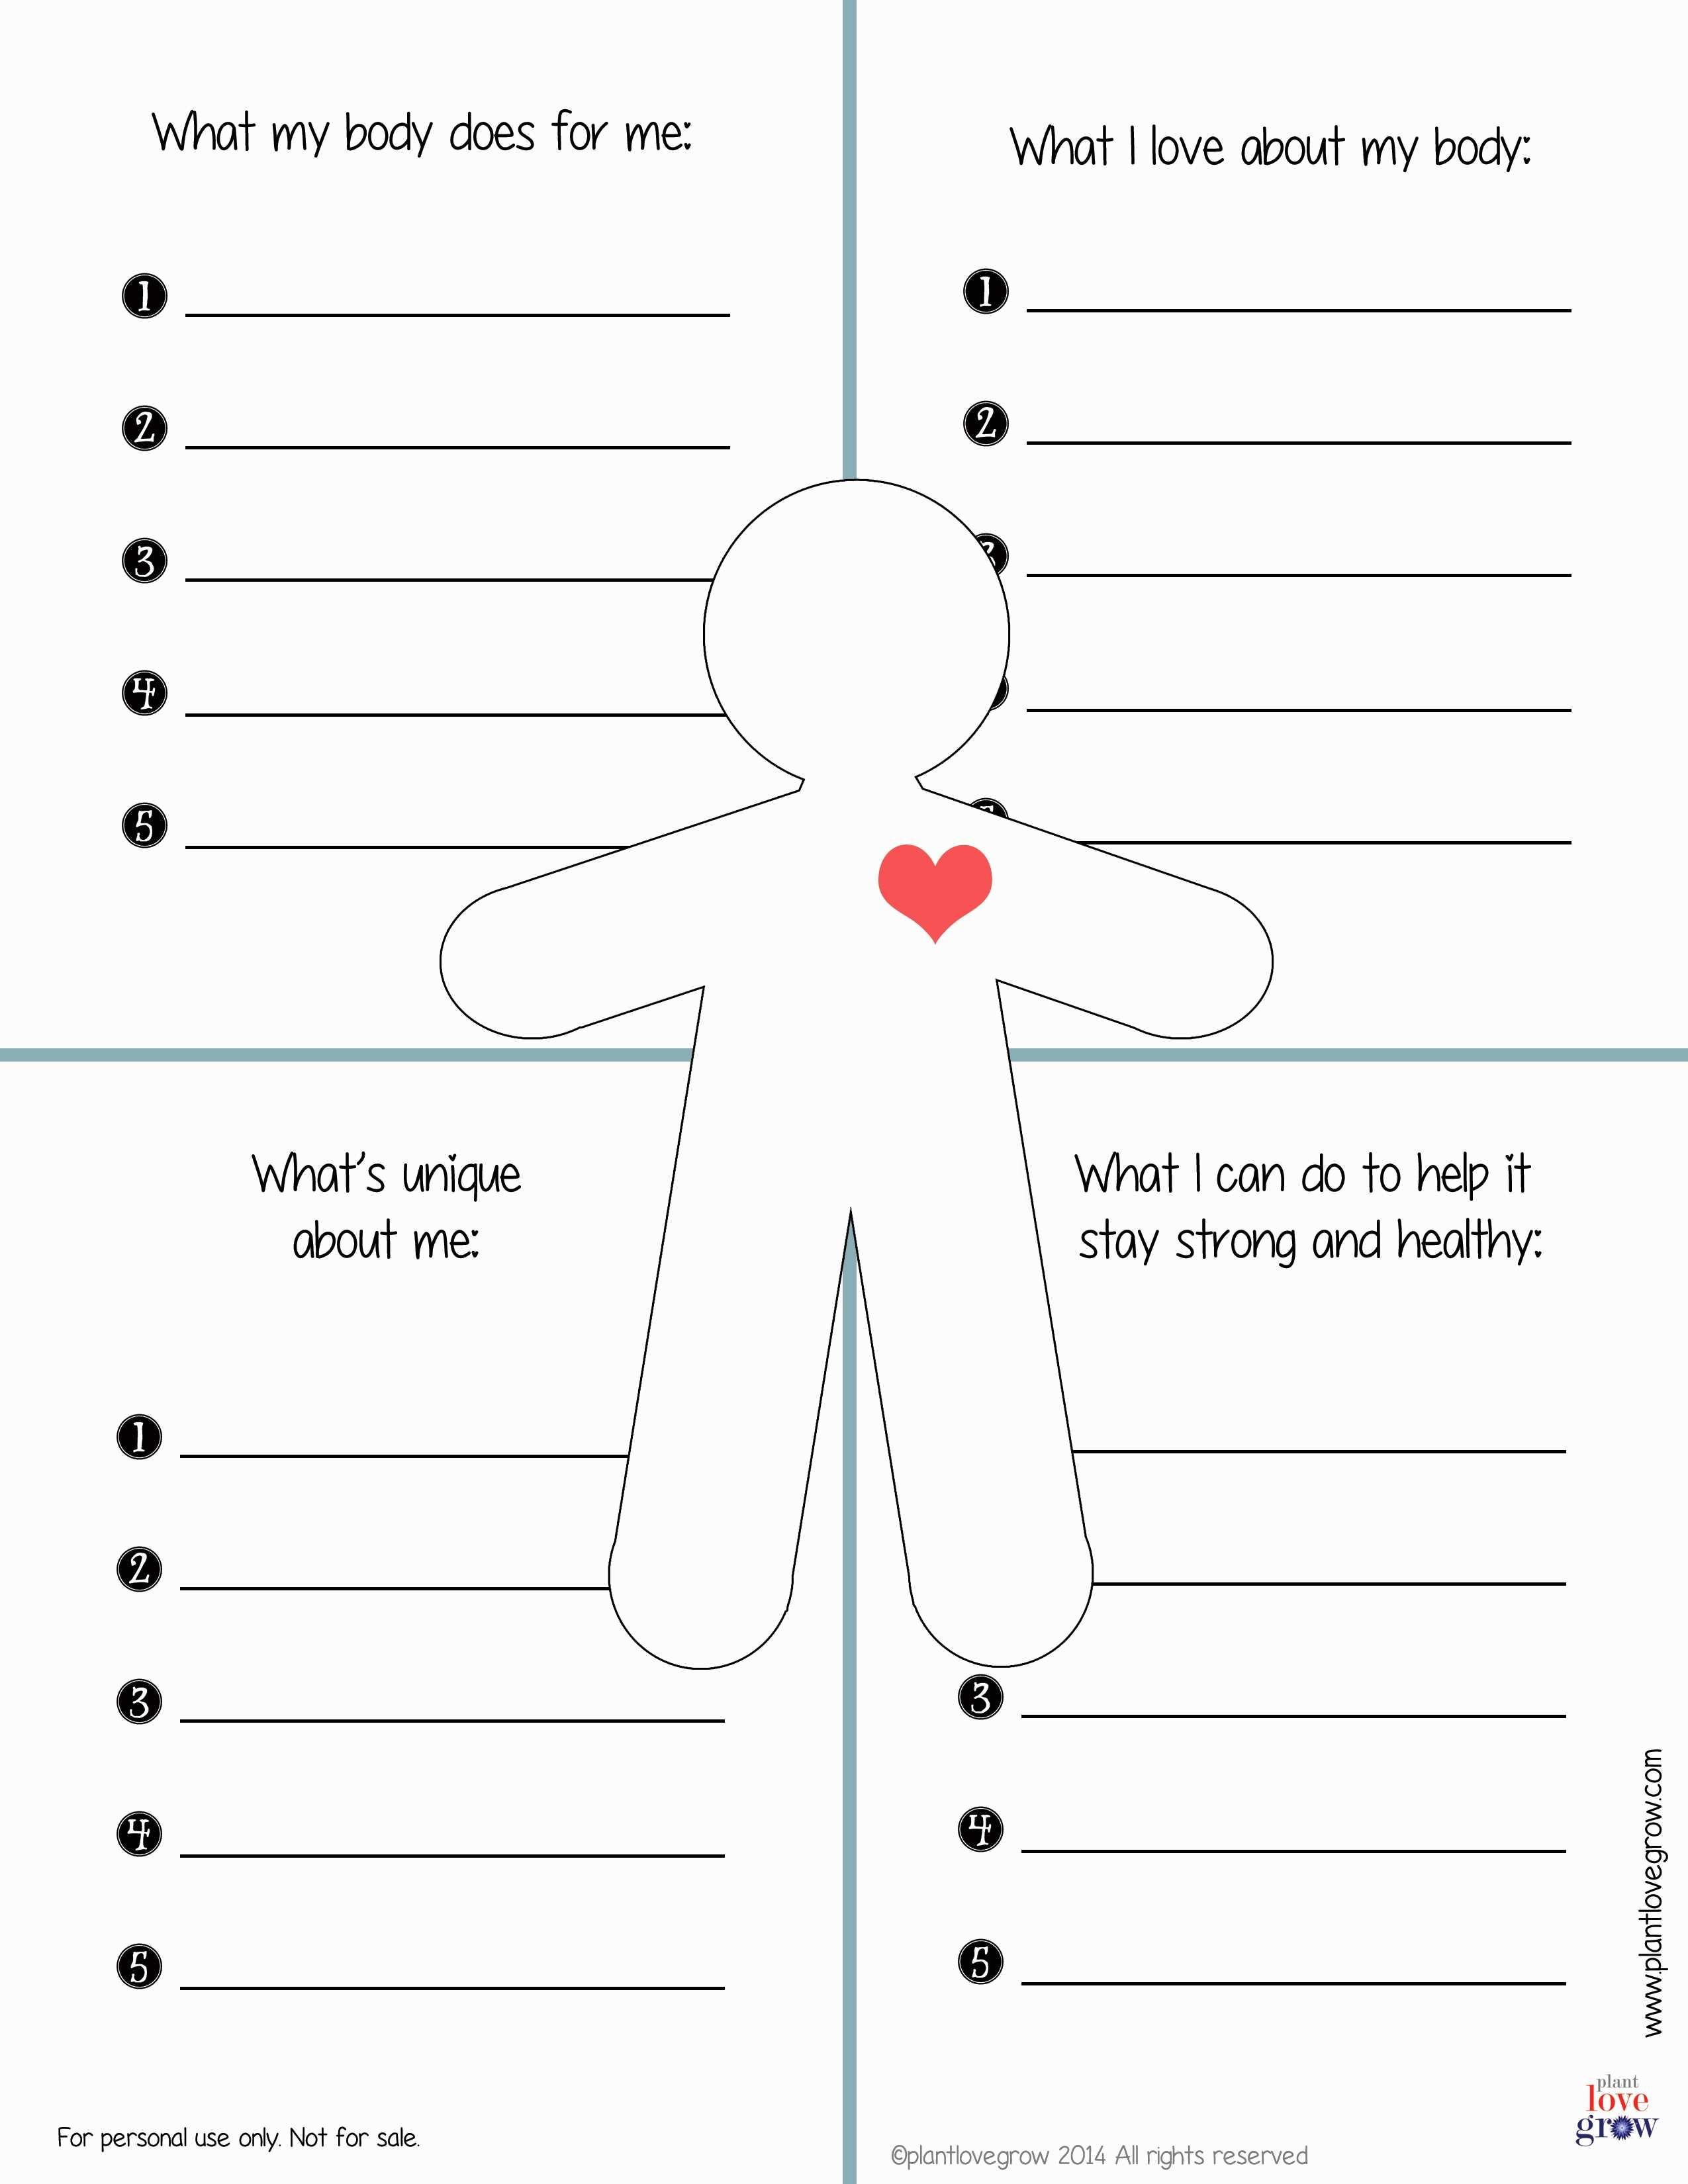 Self Esteem Worksheets For Teens : esteem, worksheets, teens, Esteem, Worksheet, Teens, Resource, Plans